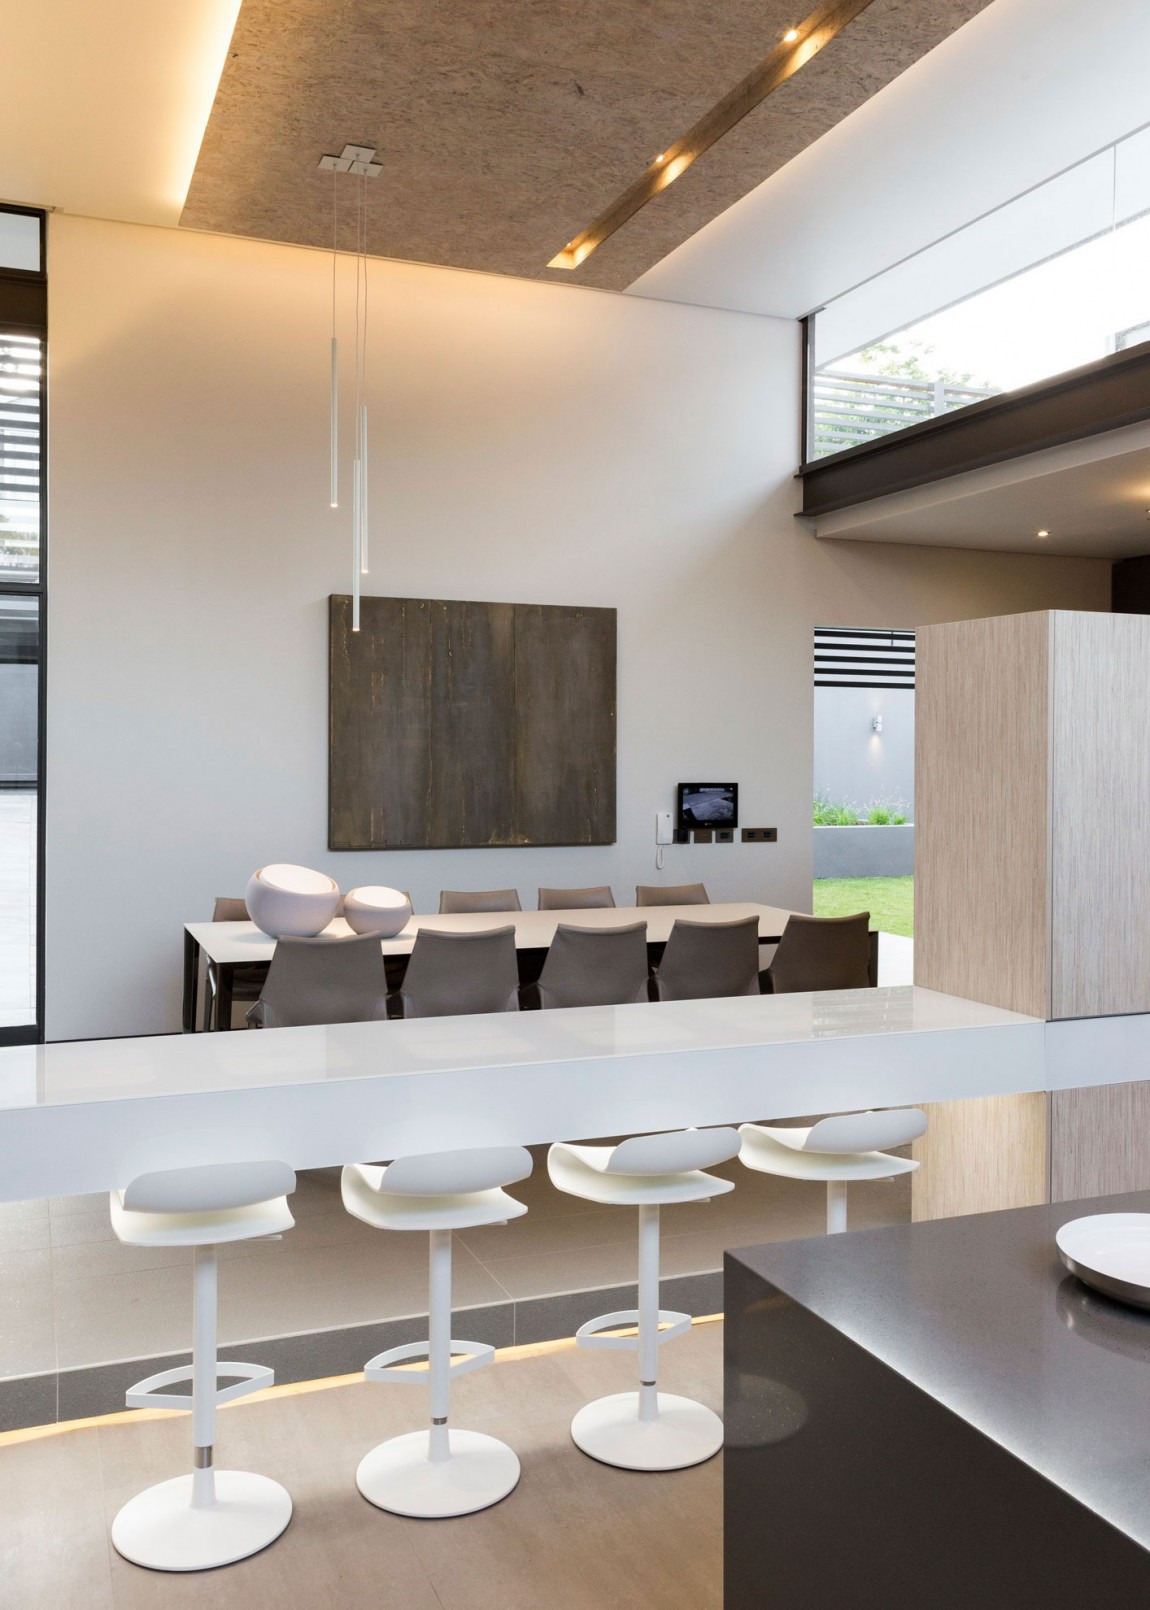 Single Story Modern House Design House Sar by Nico van der Meulen Architects on Architecture Beast 18